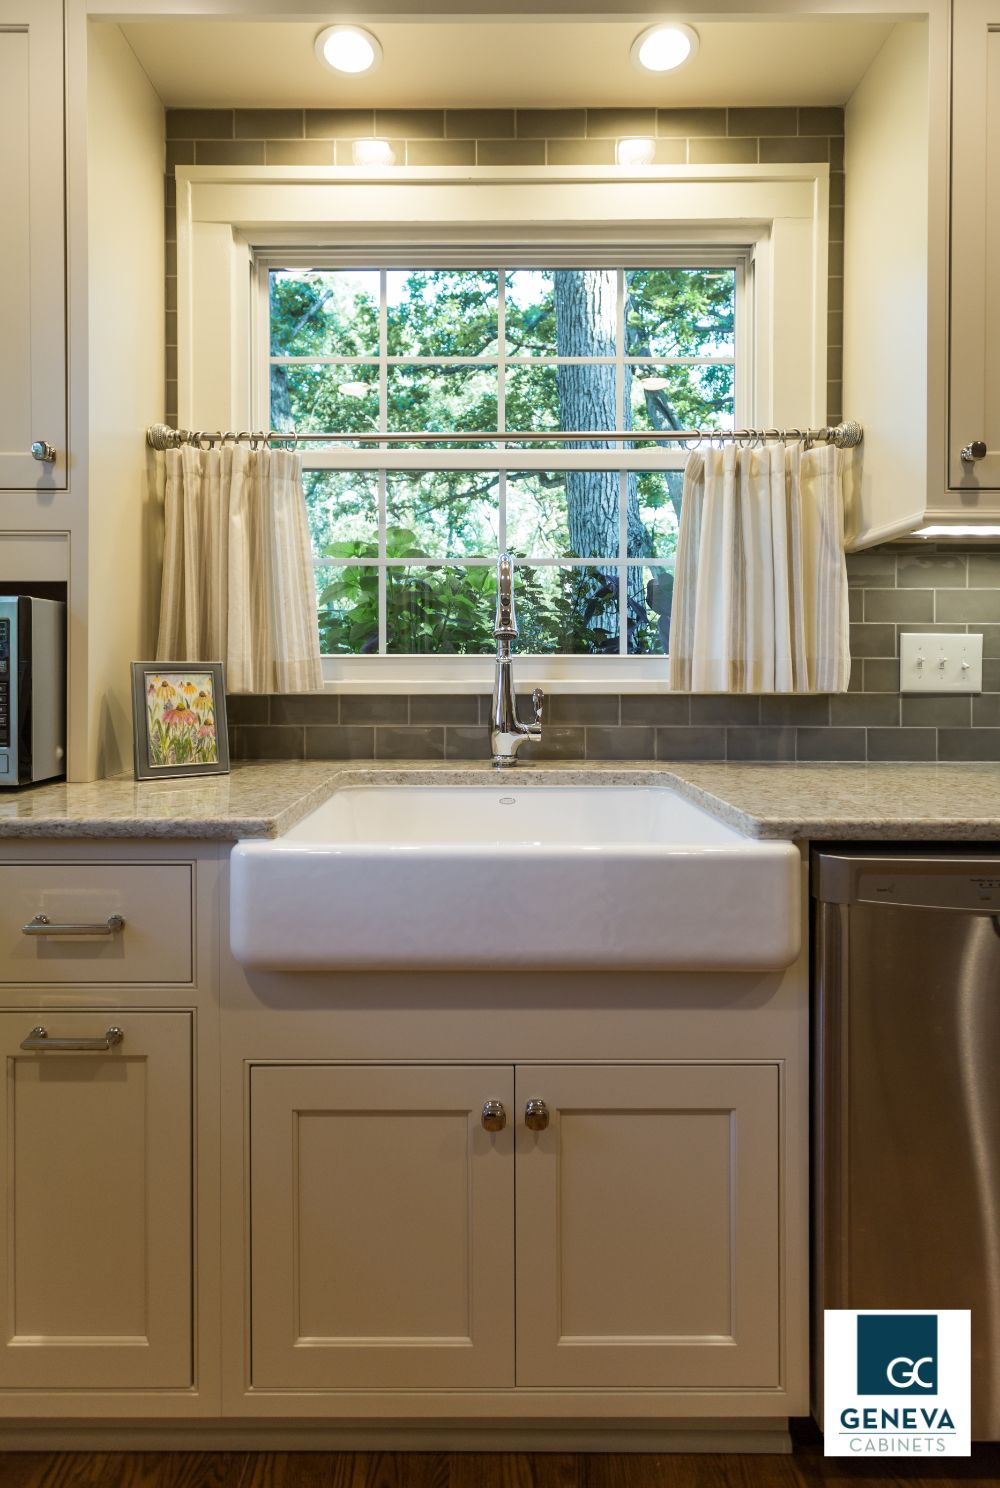 Geneva Cabinet Company Lake Geneva Wi Farmhouse Sink With Window Above And Recessed Lighting Shiloh Cabin Kitchen Cabinets Cabinetry Farmhouse Sink Kitchen